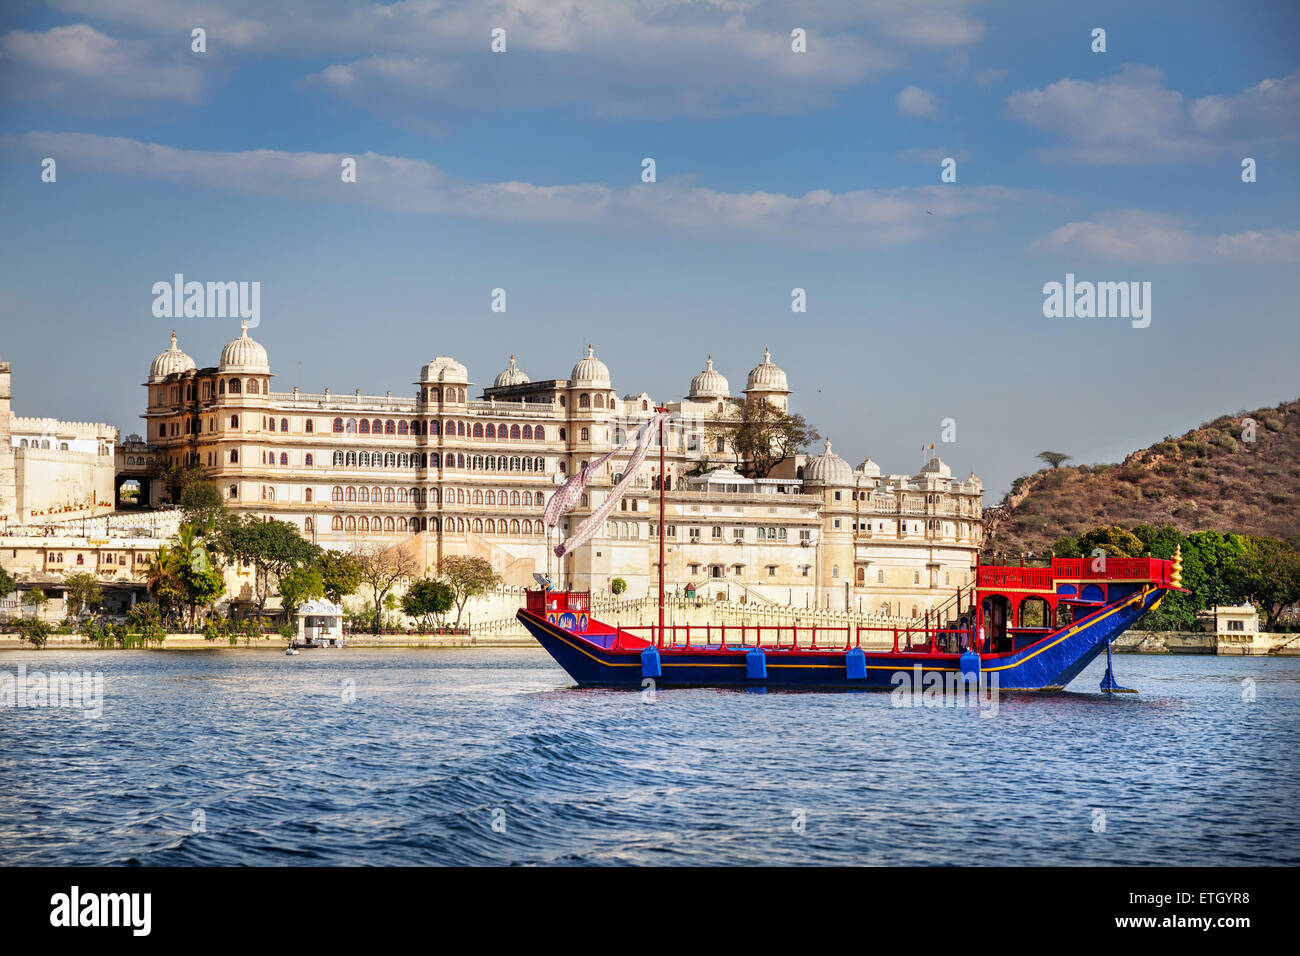 Boat on the Pichola lake with City Palace view at blue sky in Udaipur, Rajasthan, India - Stock Image